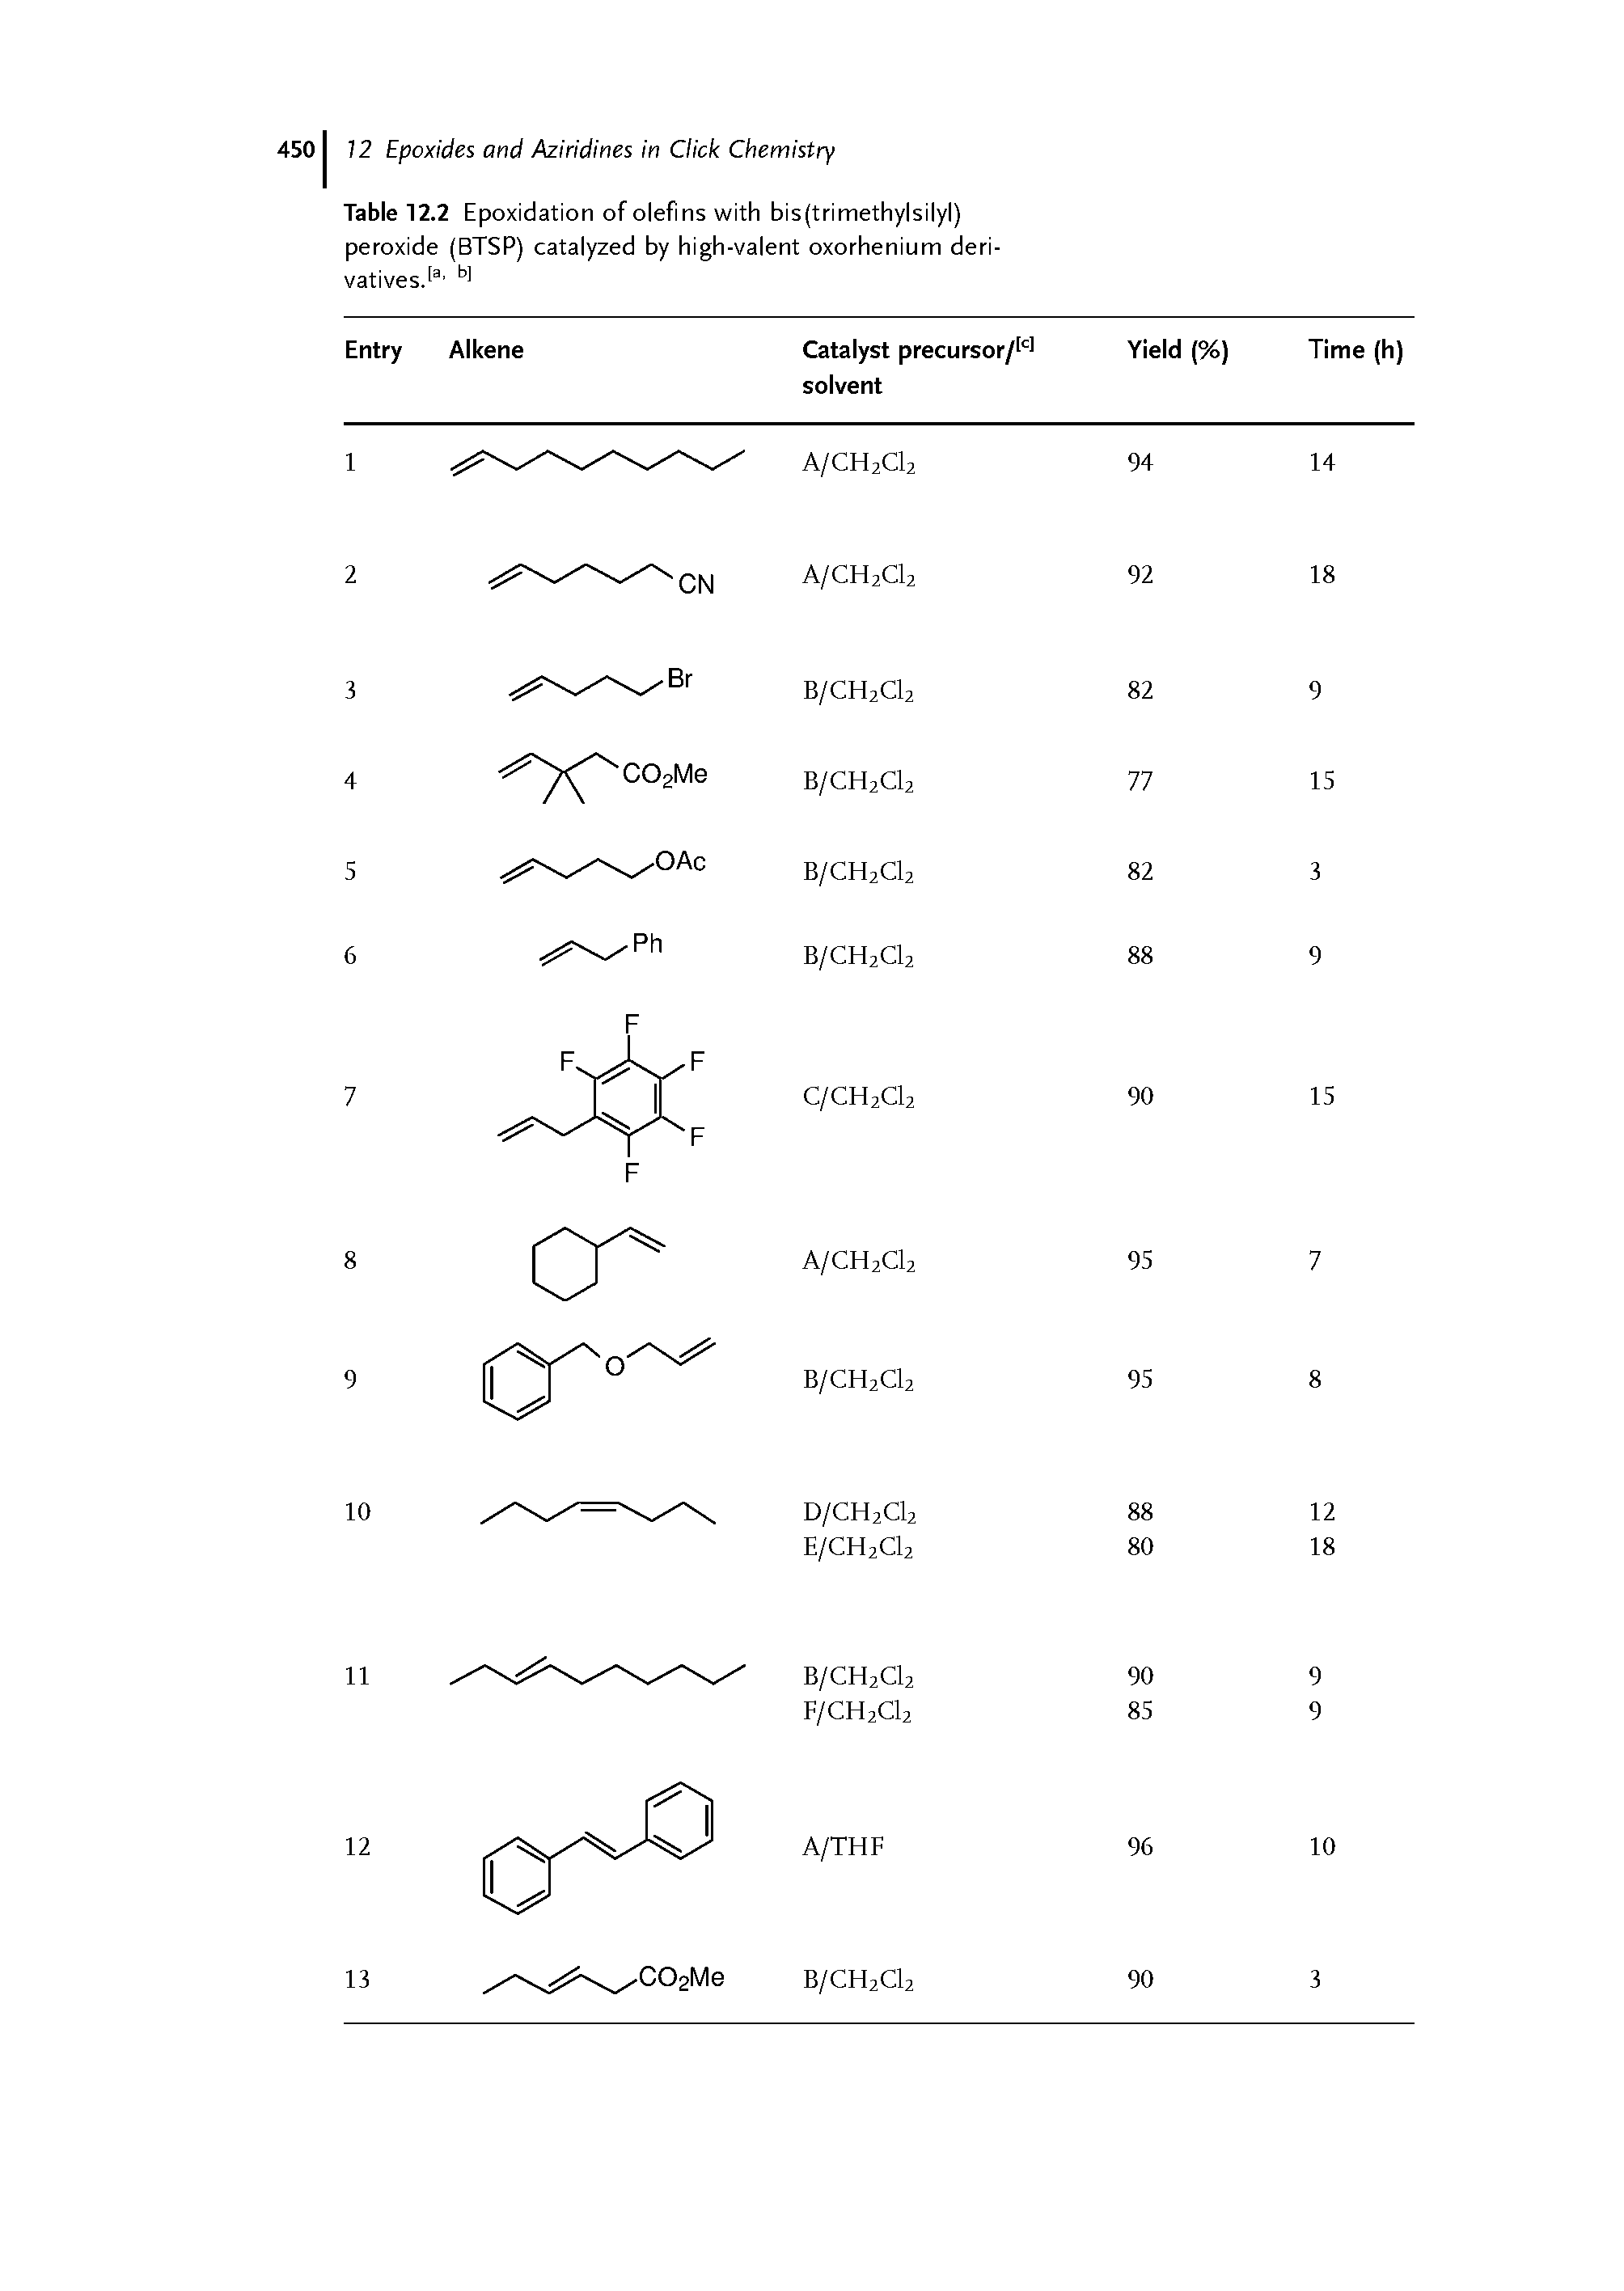 Table 12.2 Epoxidation of olefins with bis(trimethylsilyl) peroxide (BTSP) catalyzed by high-valent oxorhenium deri-vatives> bl...